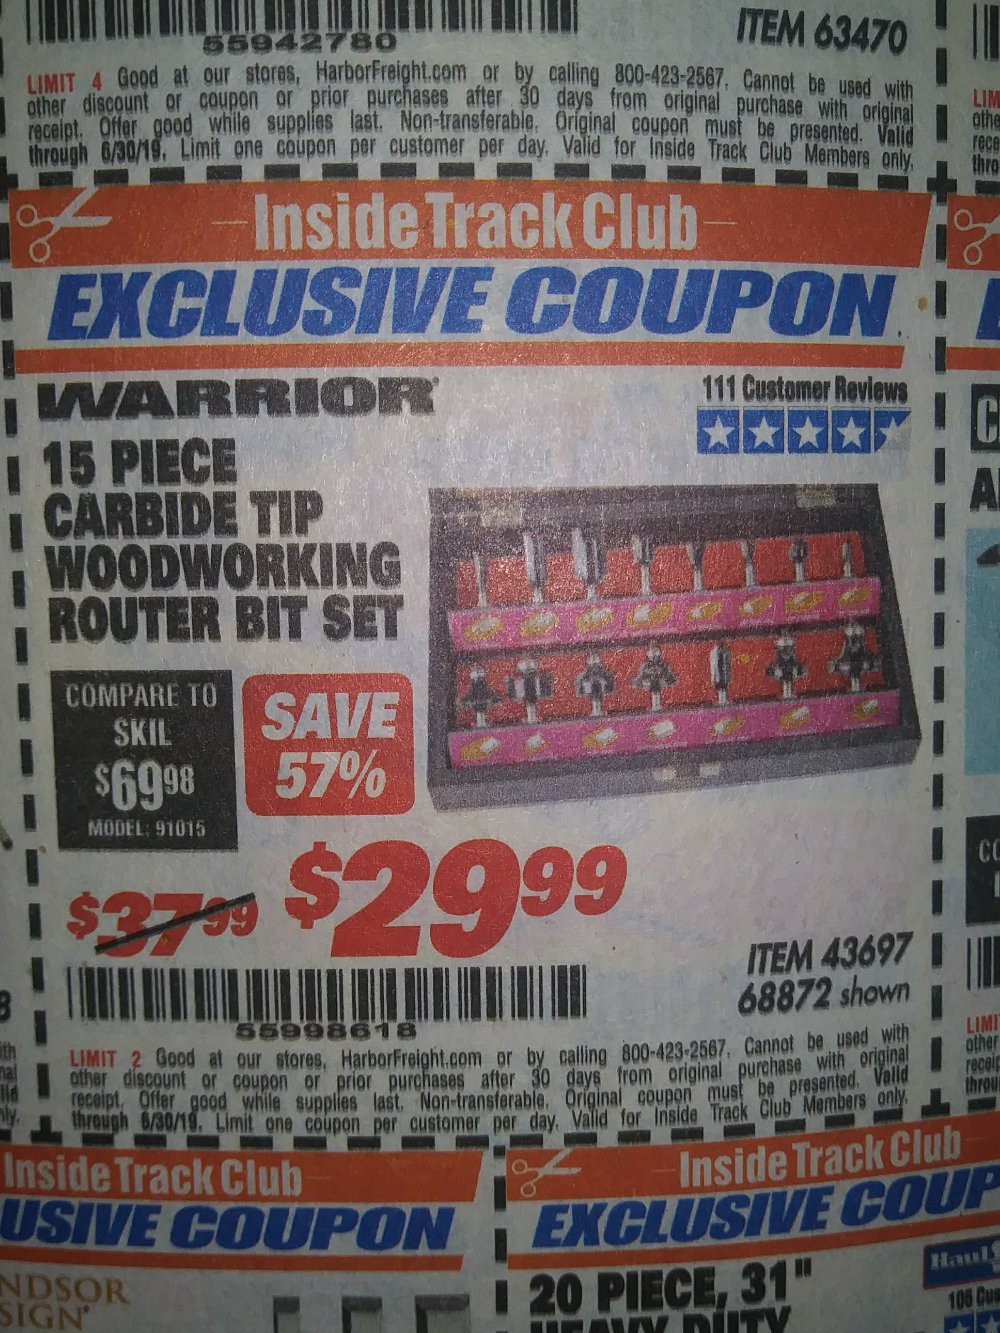 Harbor Freight Coupon, HF Coupons - 15 Piece Carbide Tip Woodworking Router Bit Set